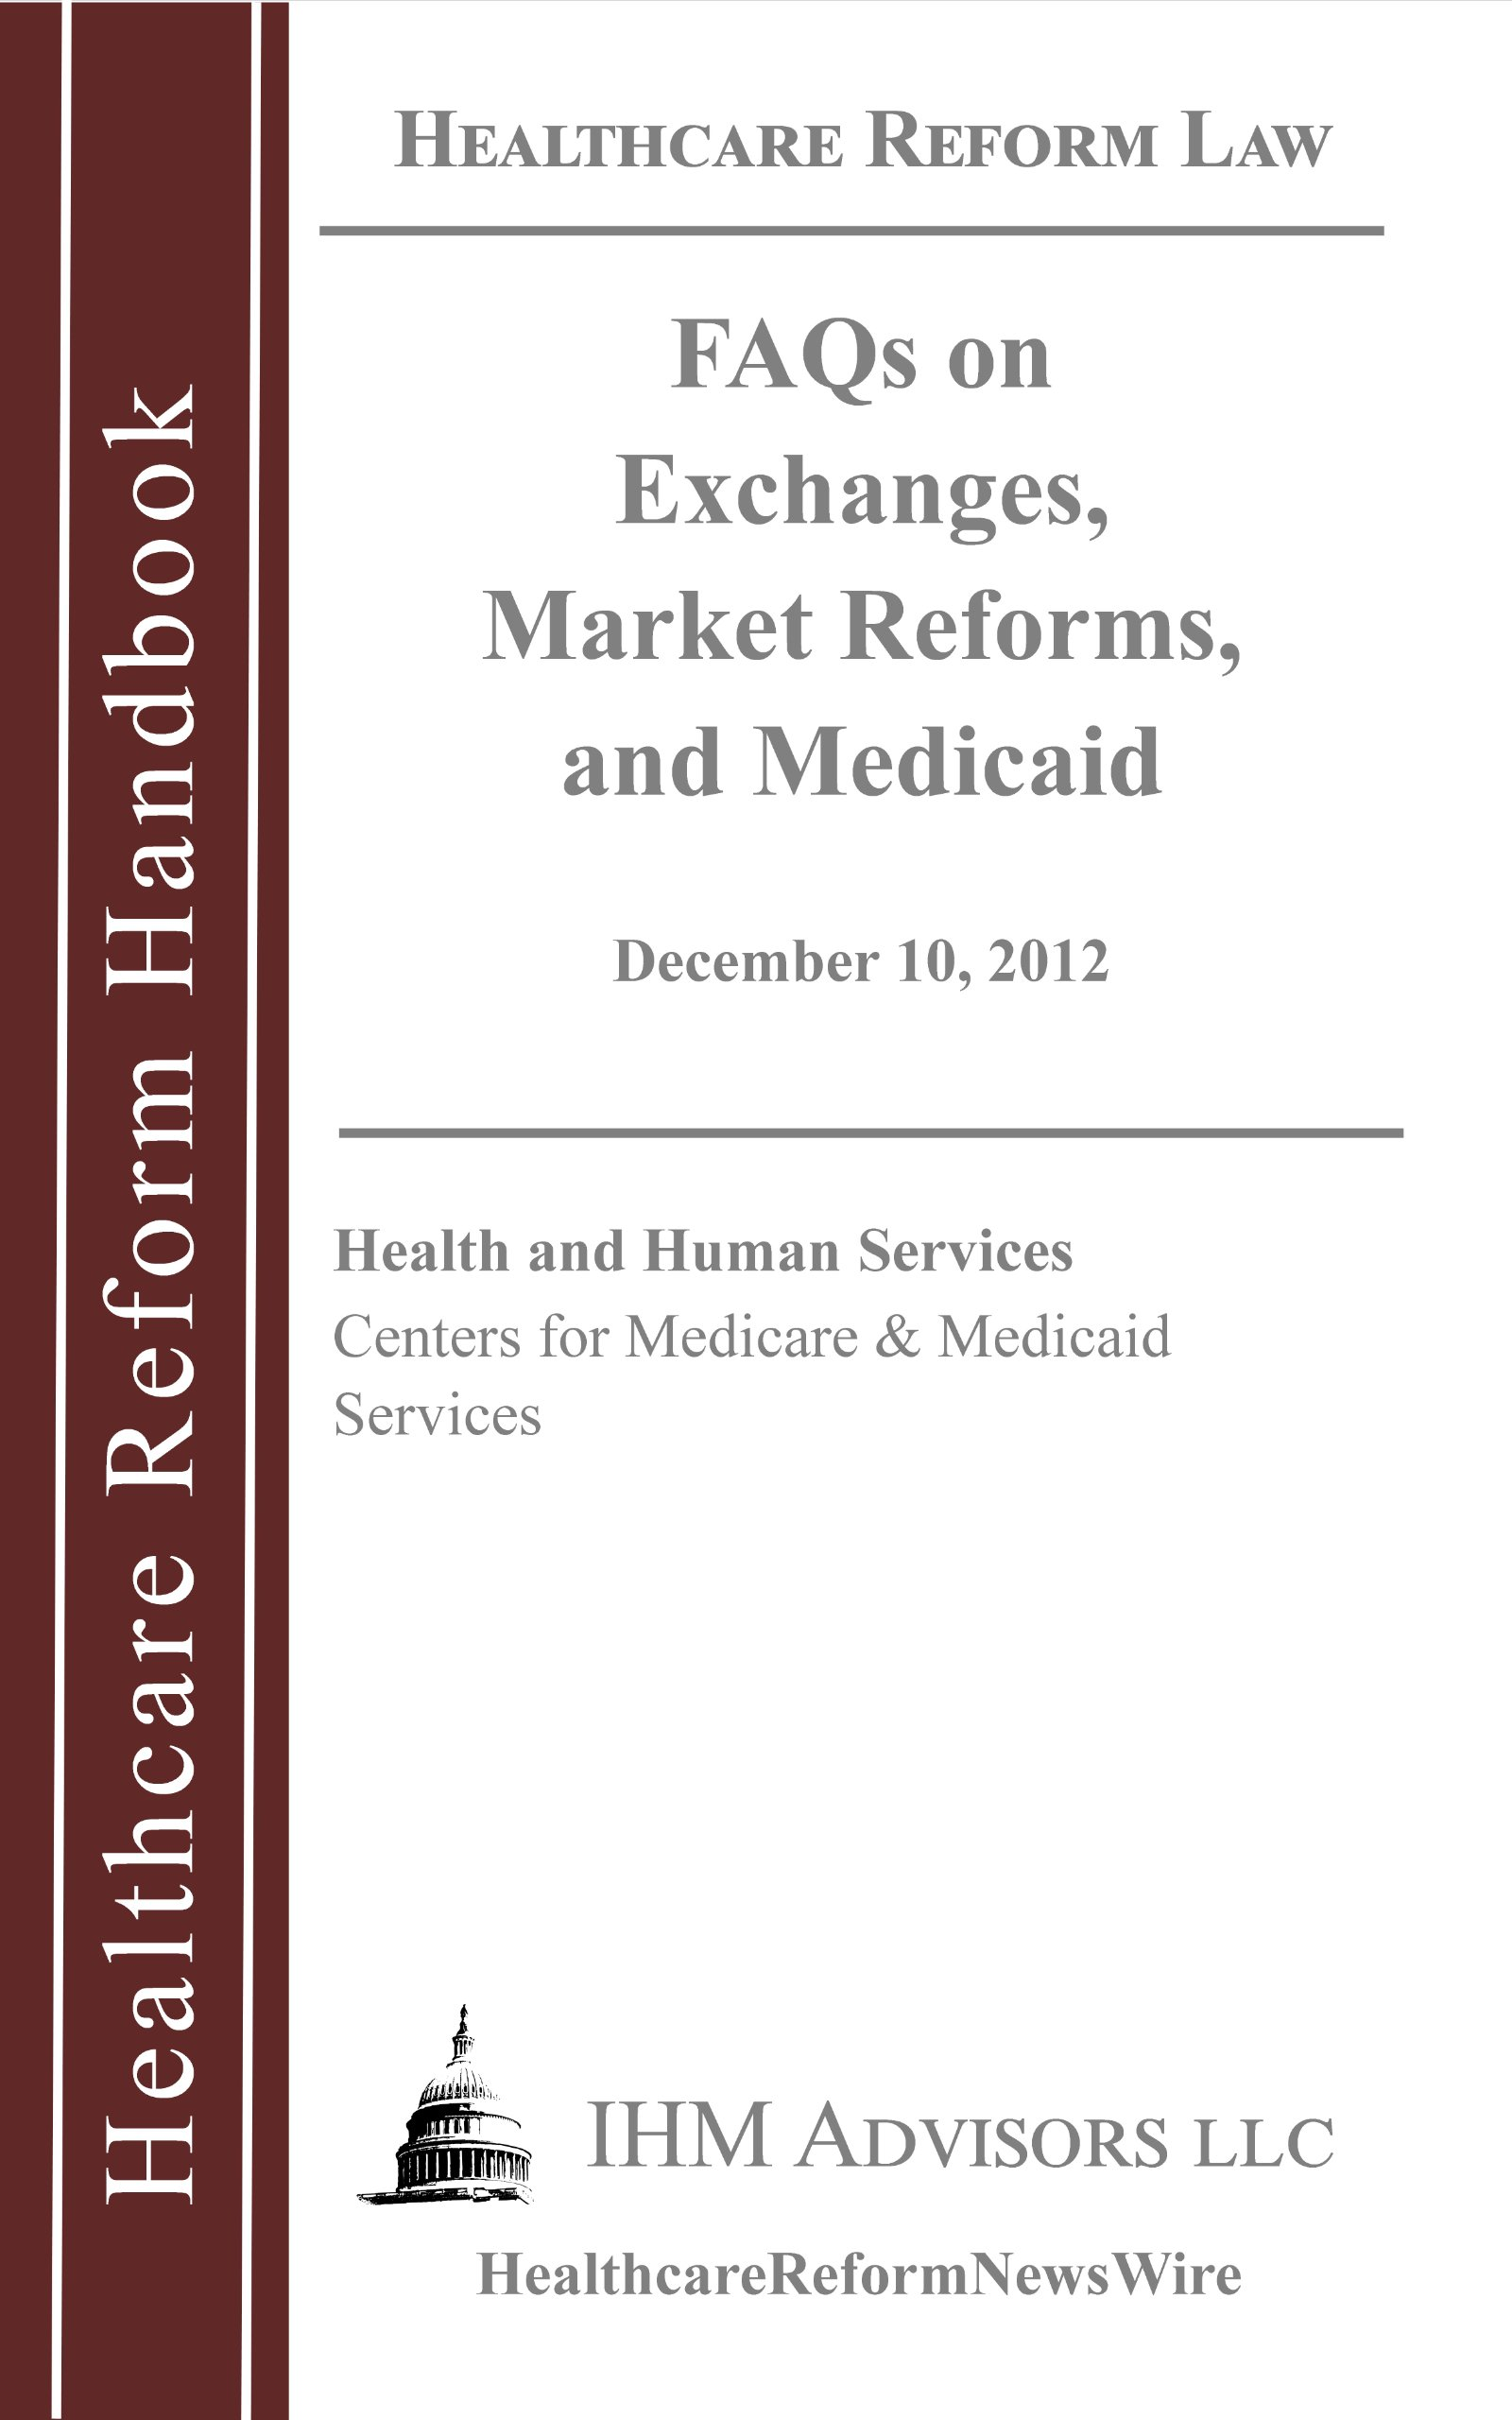 FAQs on Exchanges, Market Reforms, and Medicaid (Healthcare Reform Handbook - Law Notice)